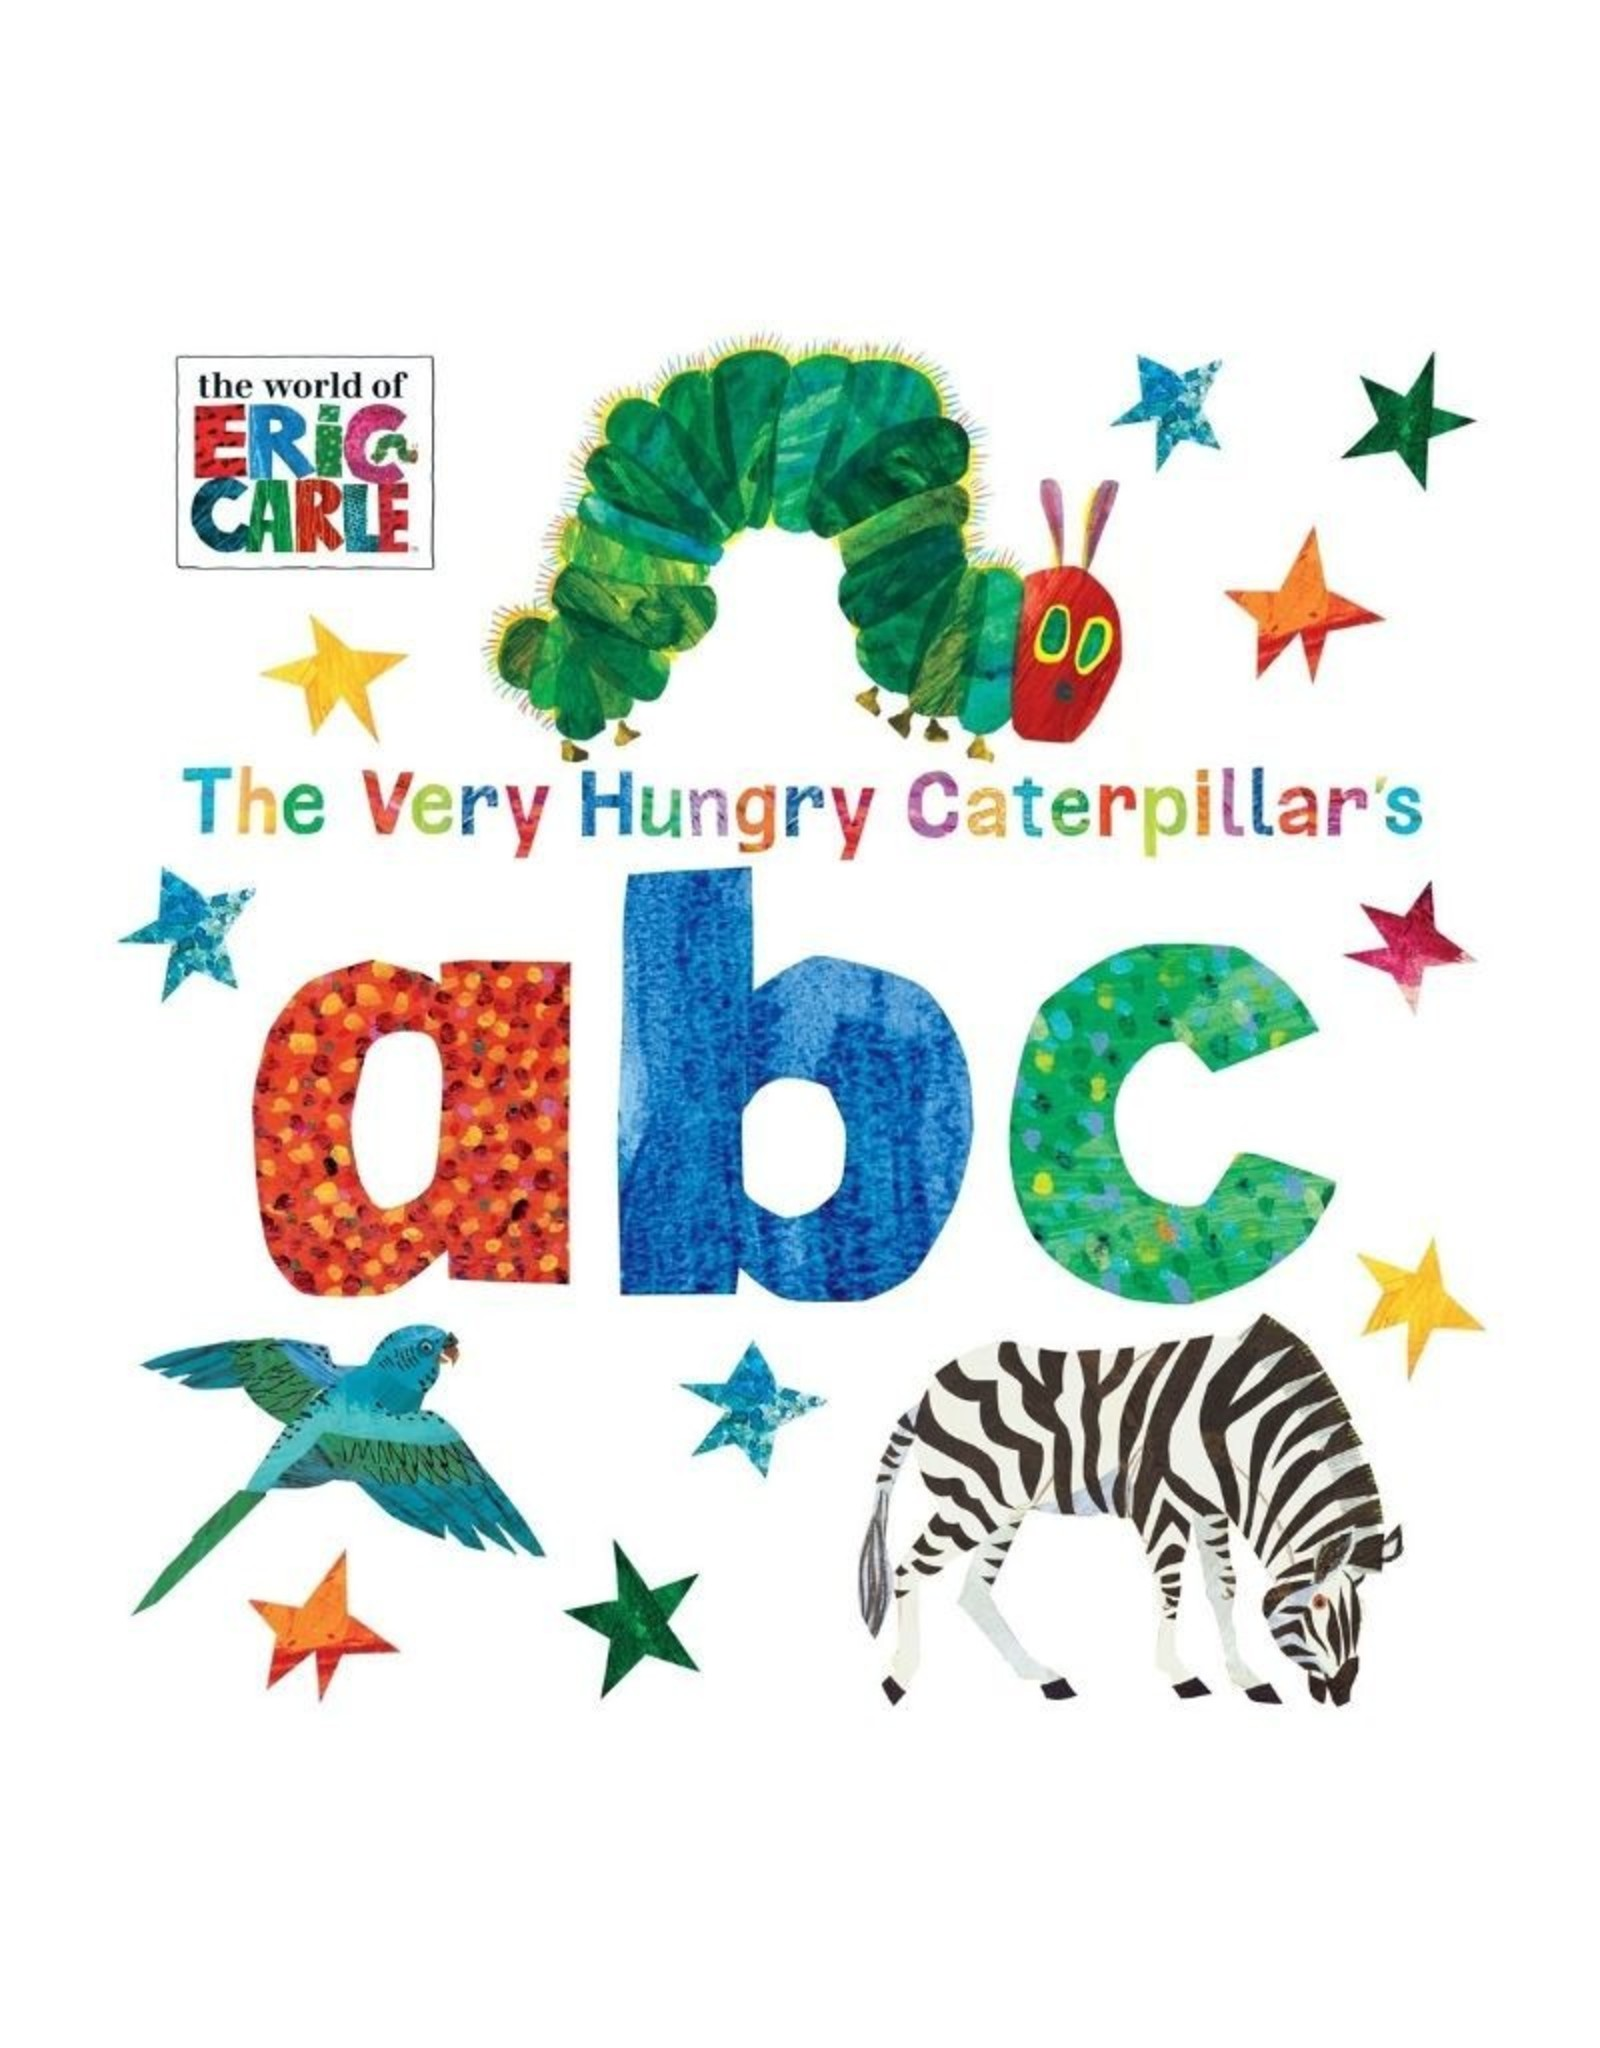 The Very Hungry Caterpillar ABC